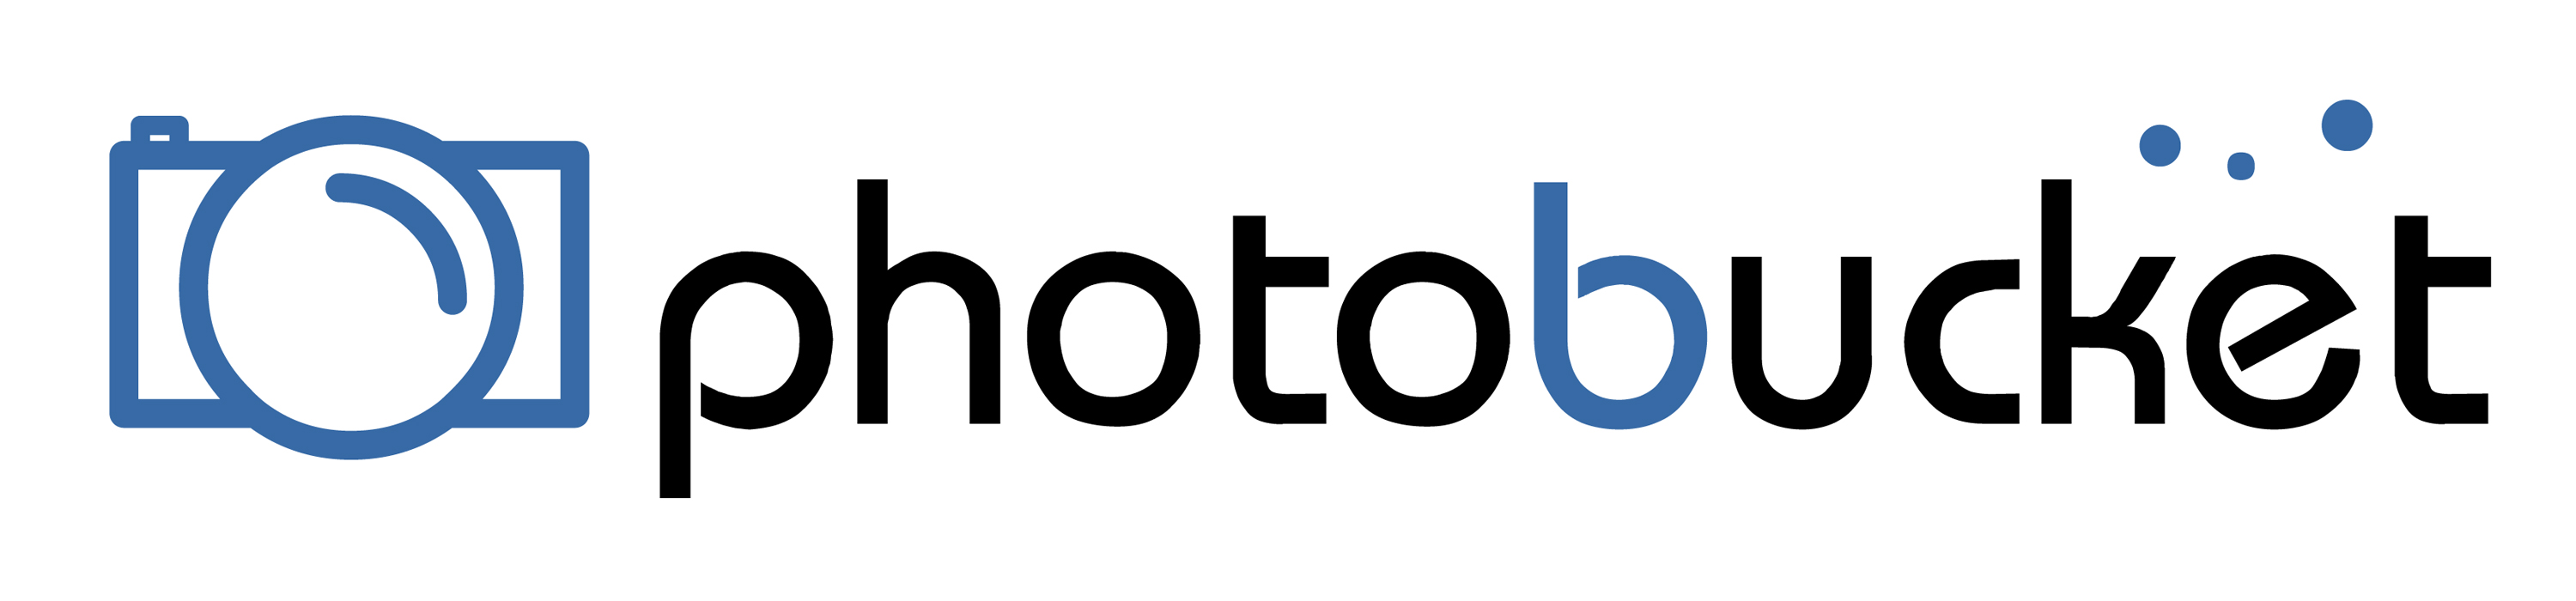 photobucketlogo.jpg